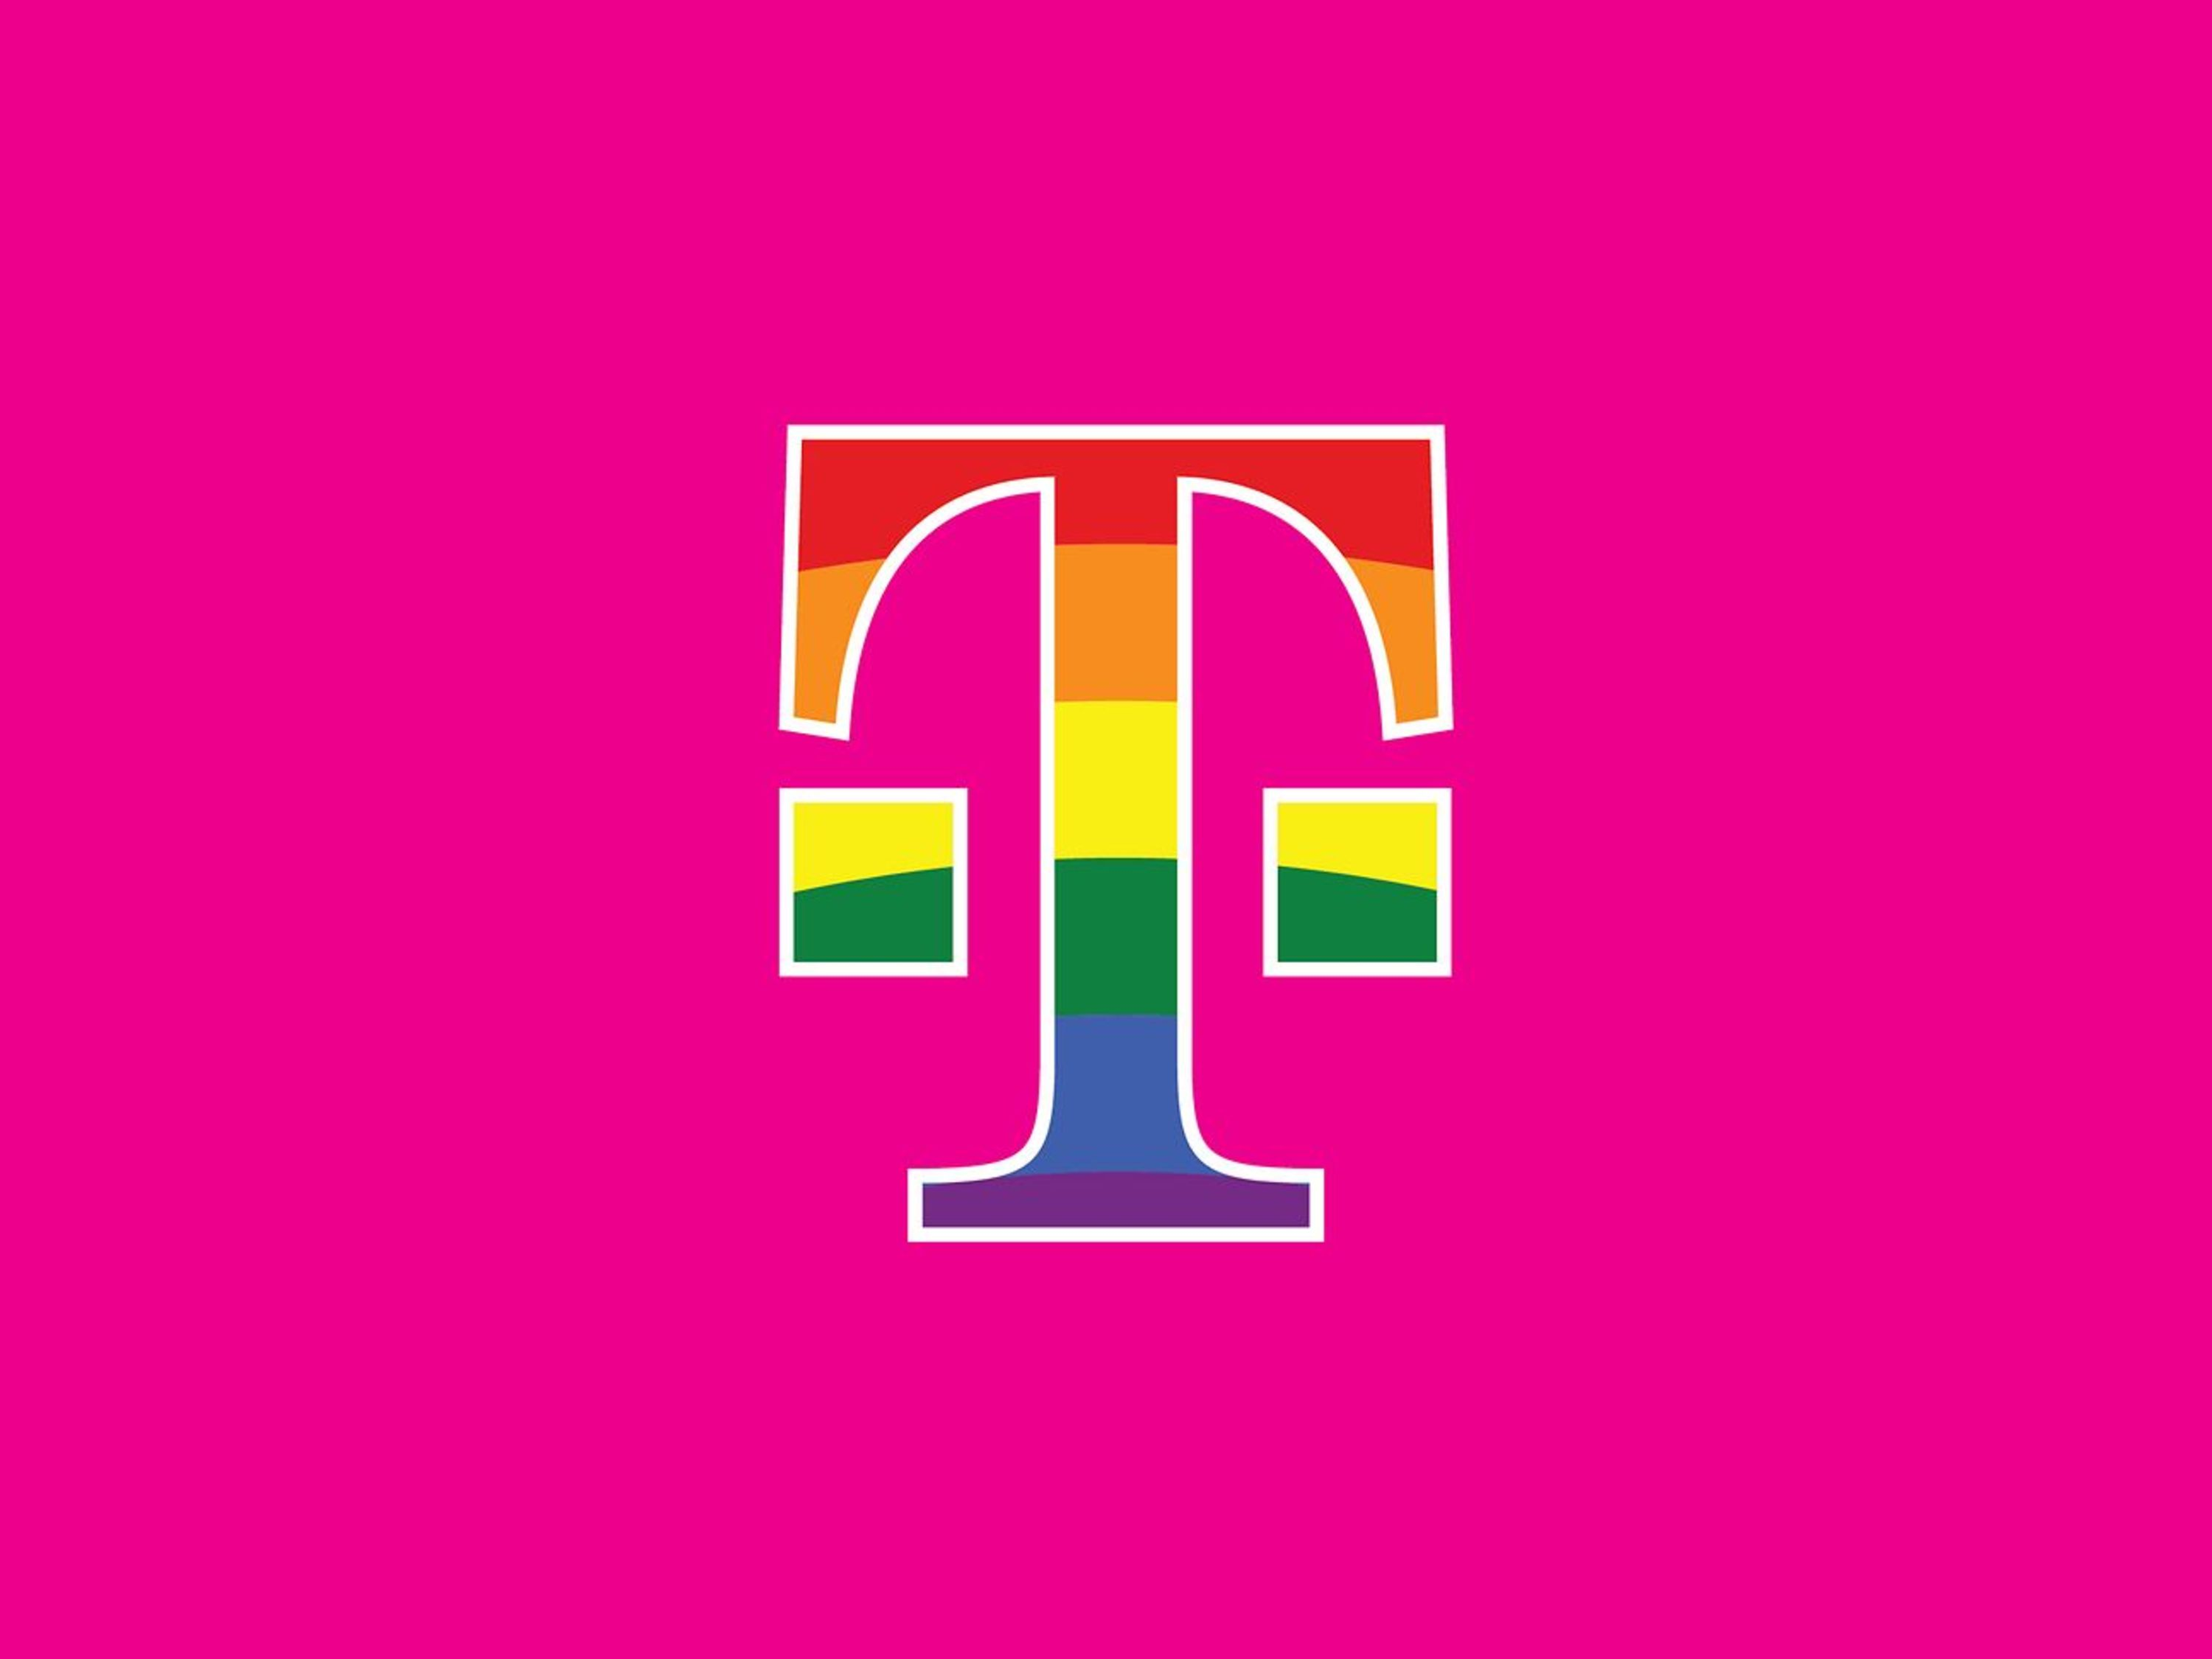 A vibrant T on a magenta background.